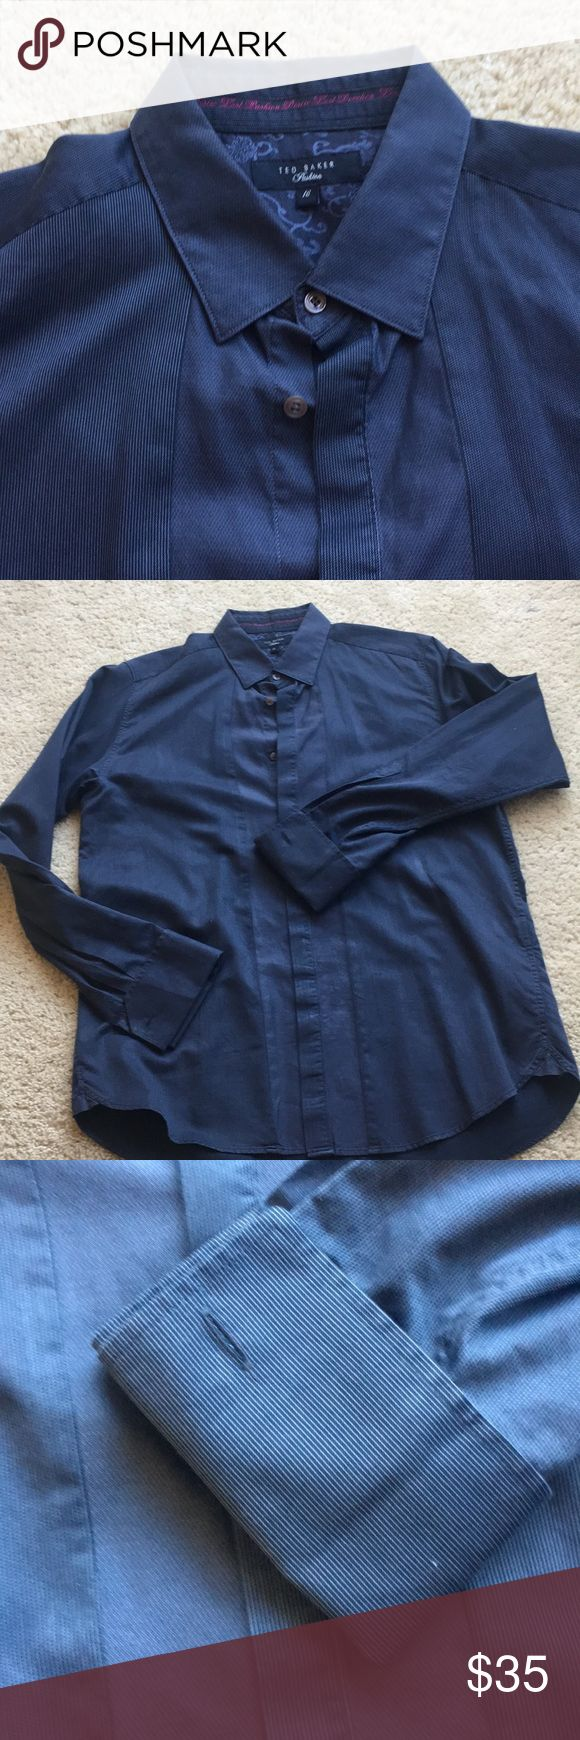 Ted Baker Men's Button Down Ted Baker quality is top notch. Very soft. Detail running through front of shirt. Sleeves need cufflinks. Color is between black/navy. Very chic. Ted Baker Shirts